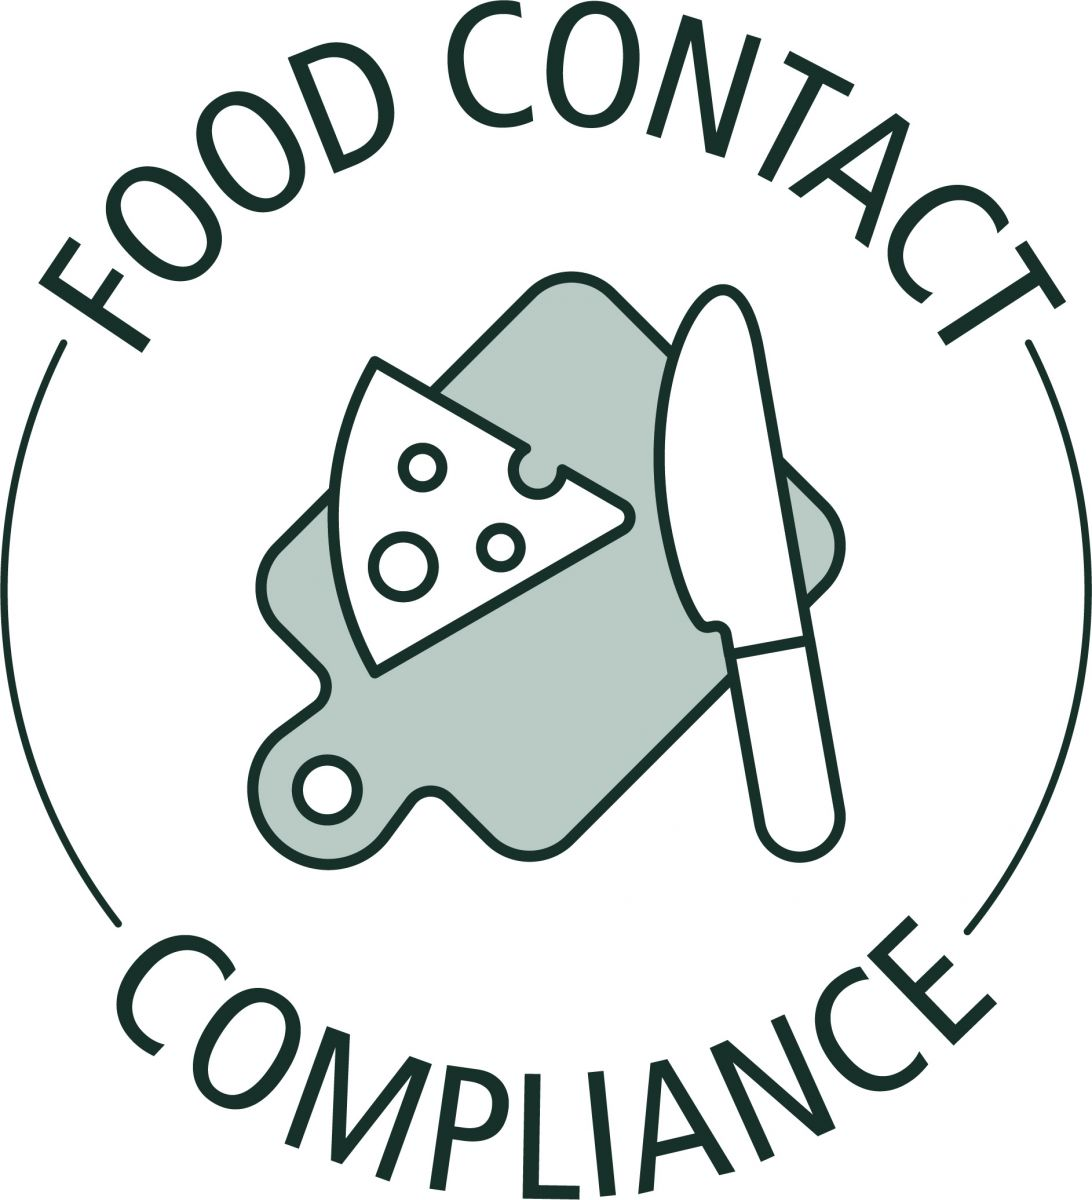 This logo shows that Rubio Monocoat oil is Food Contact Compliant.